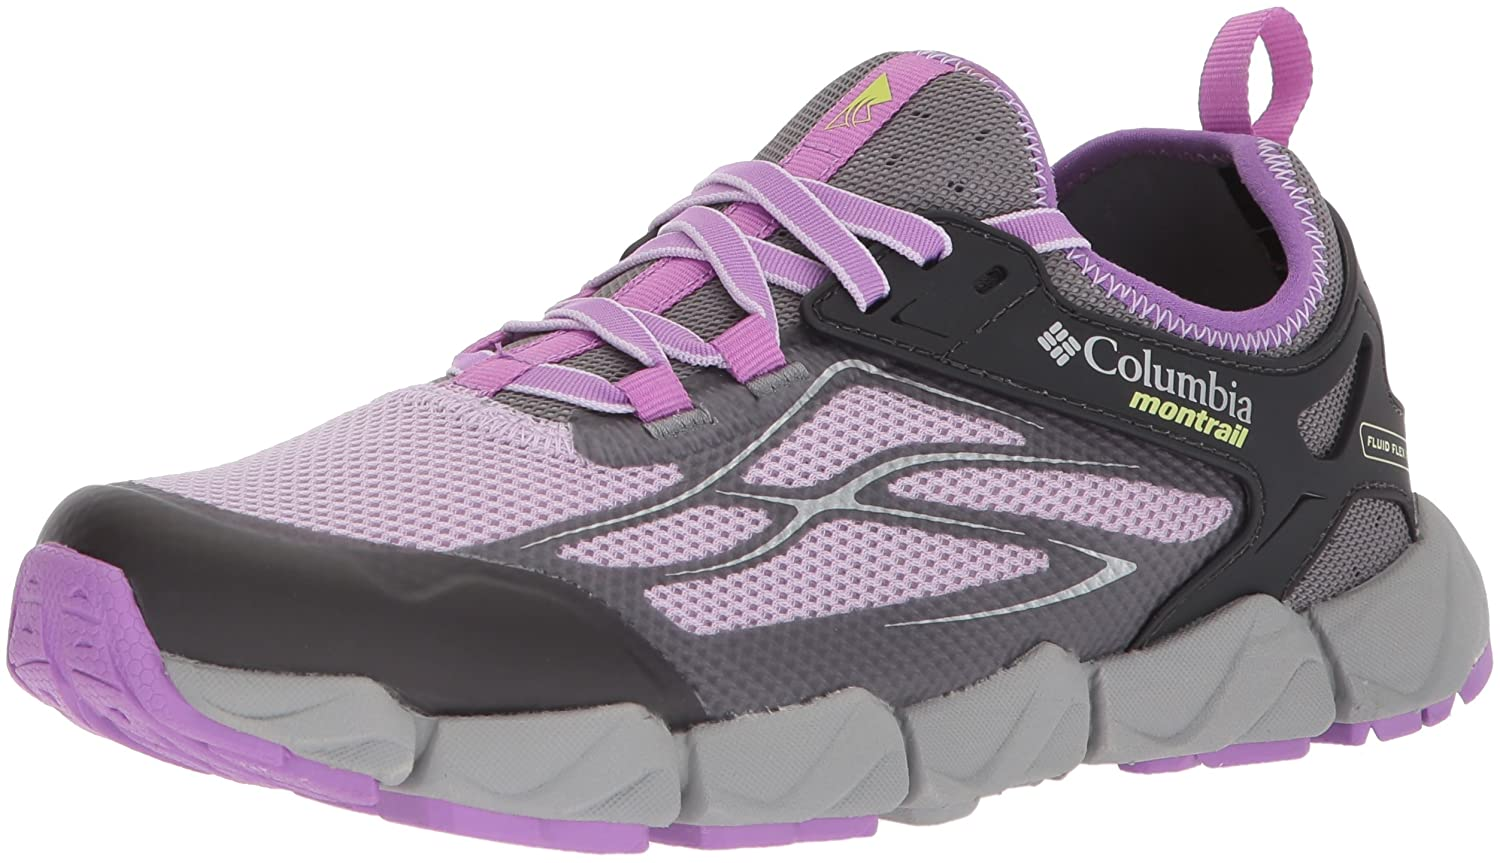 Columbia Montrail Women's Fluidflex X.S.R. Trail Running Shoe B072WK6WRH 5.5 B(M) US|Phantom Purple, Nappa Green